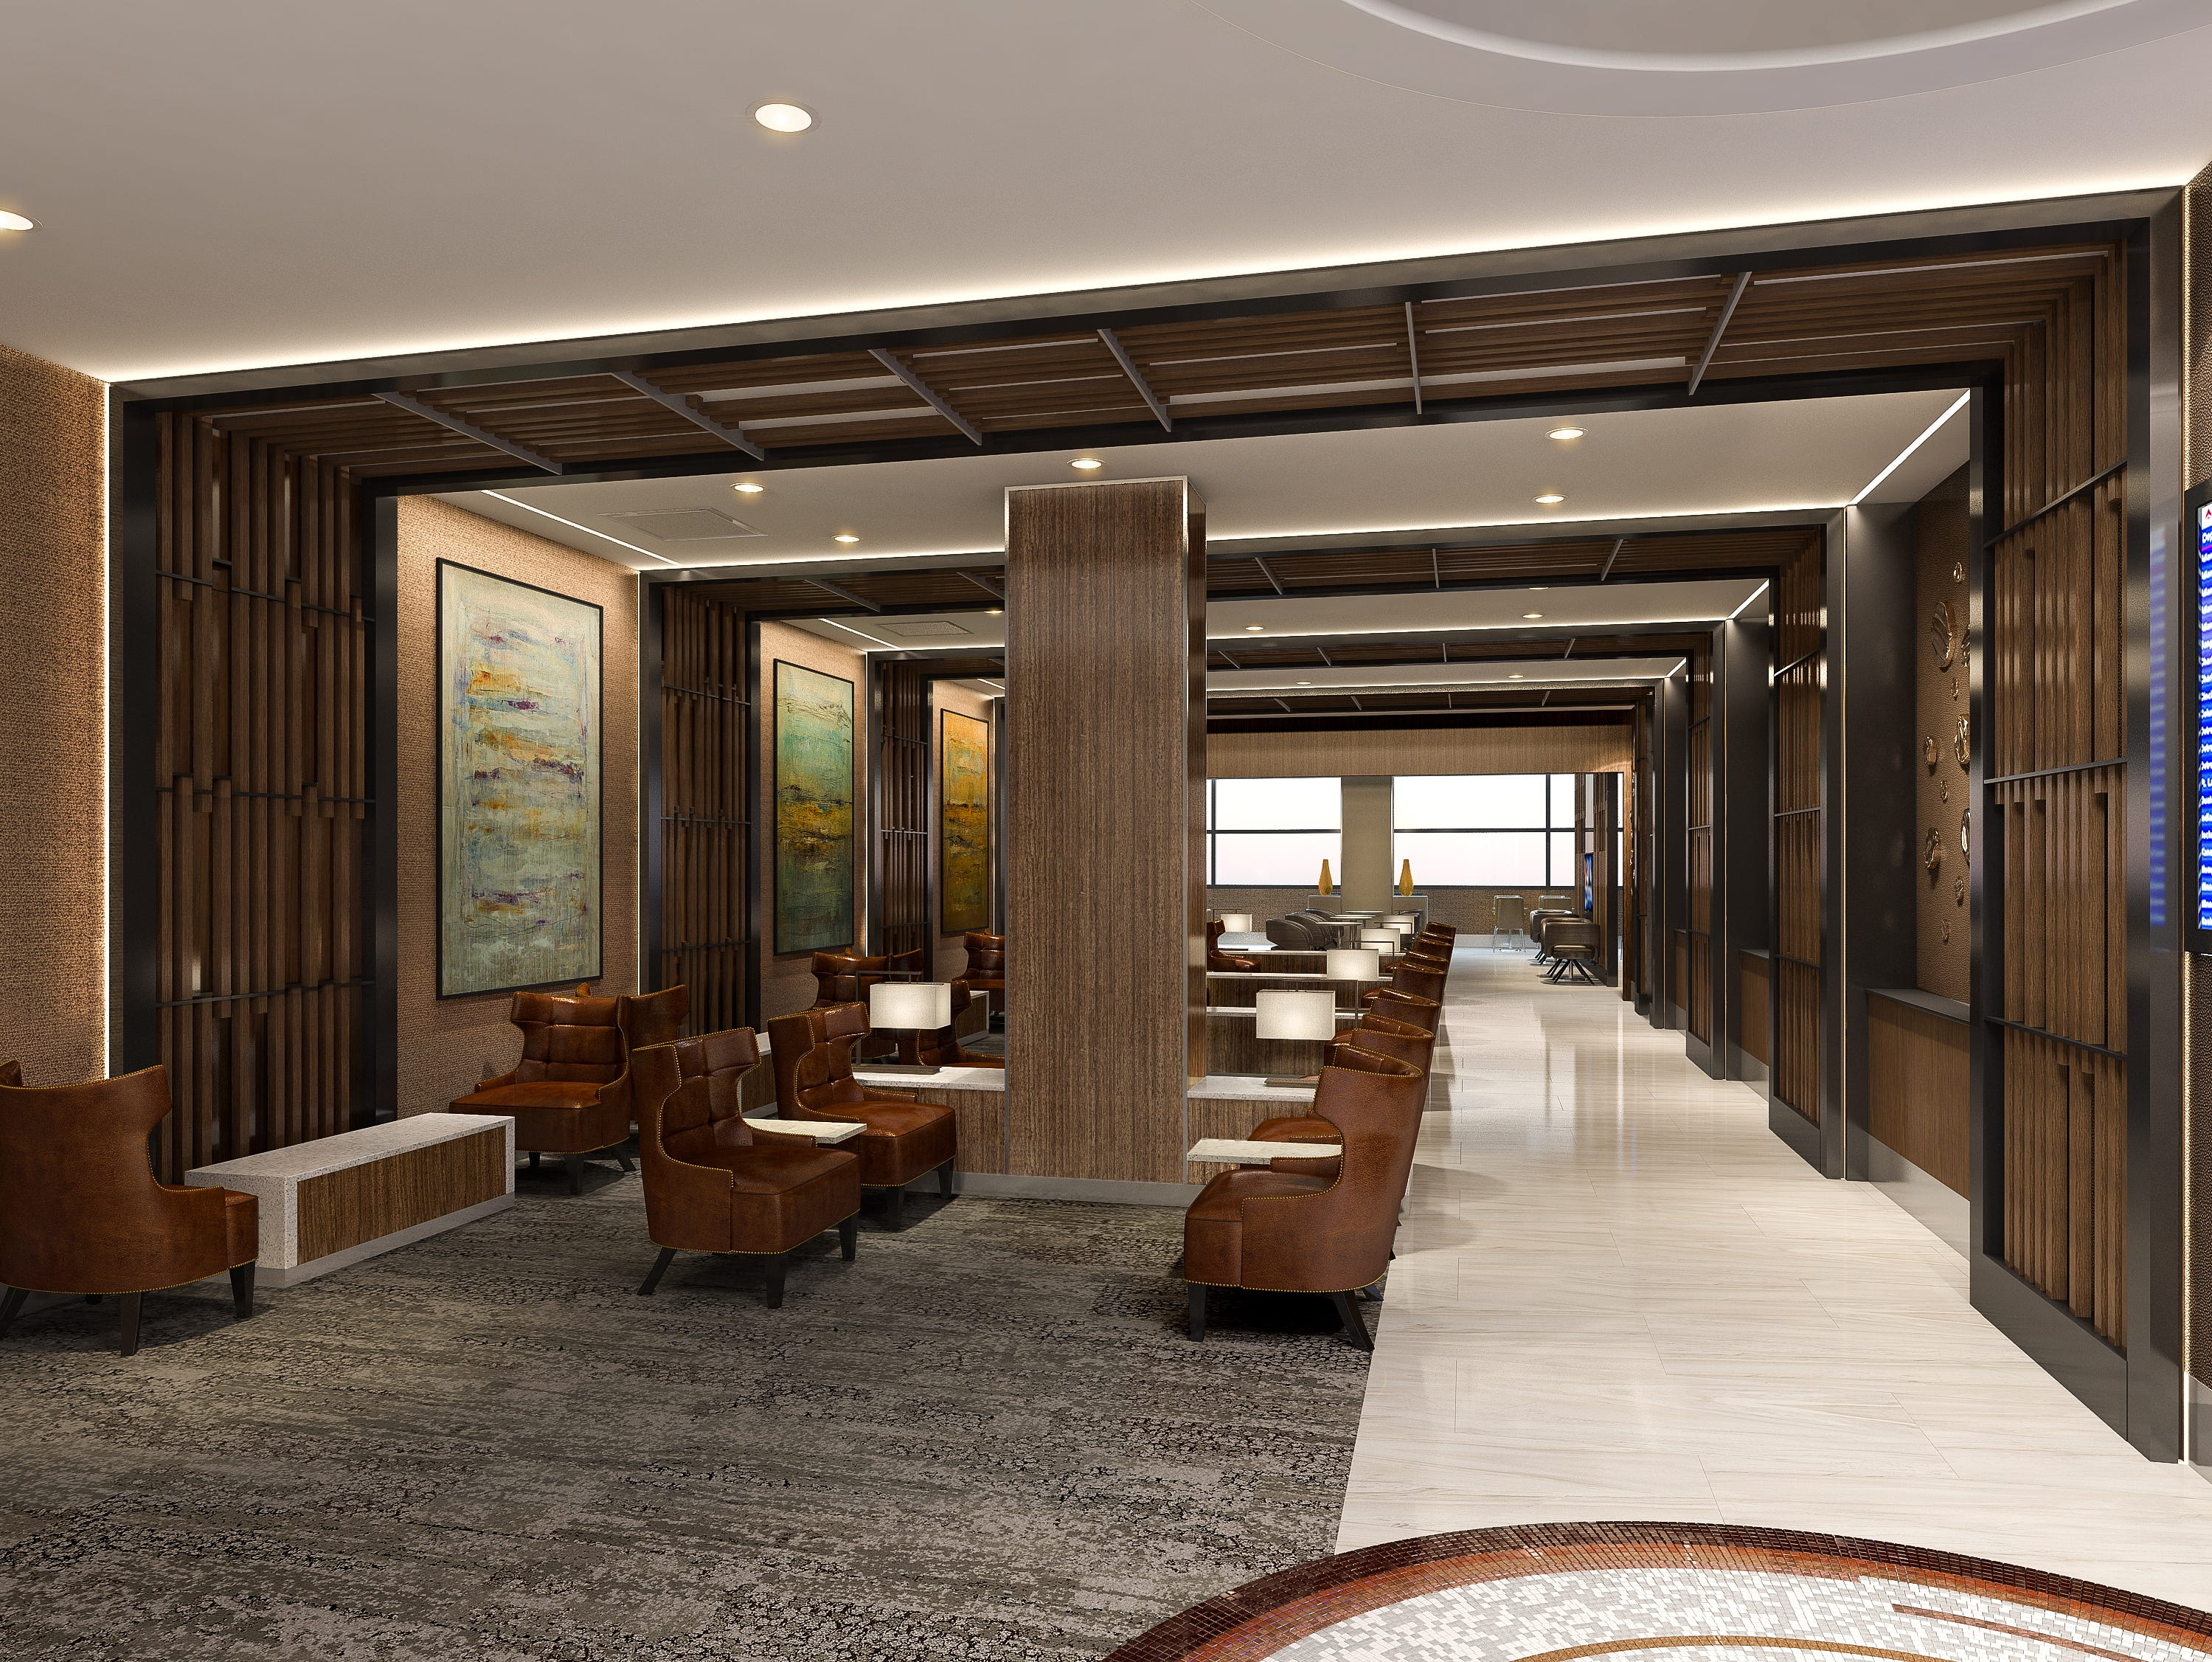 Rendering of the new Delta Sky Club lounge expected to go into Terminal 3